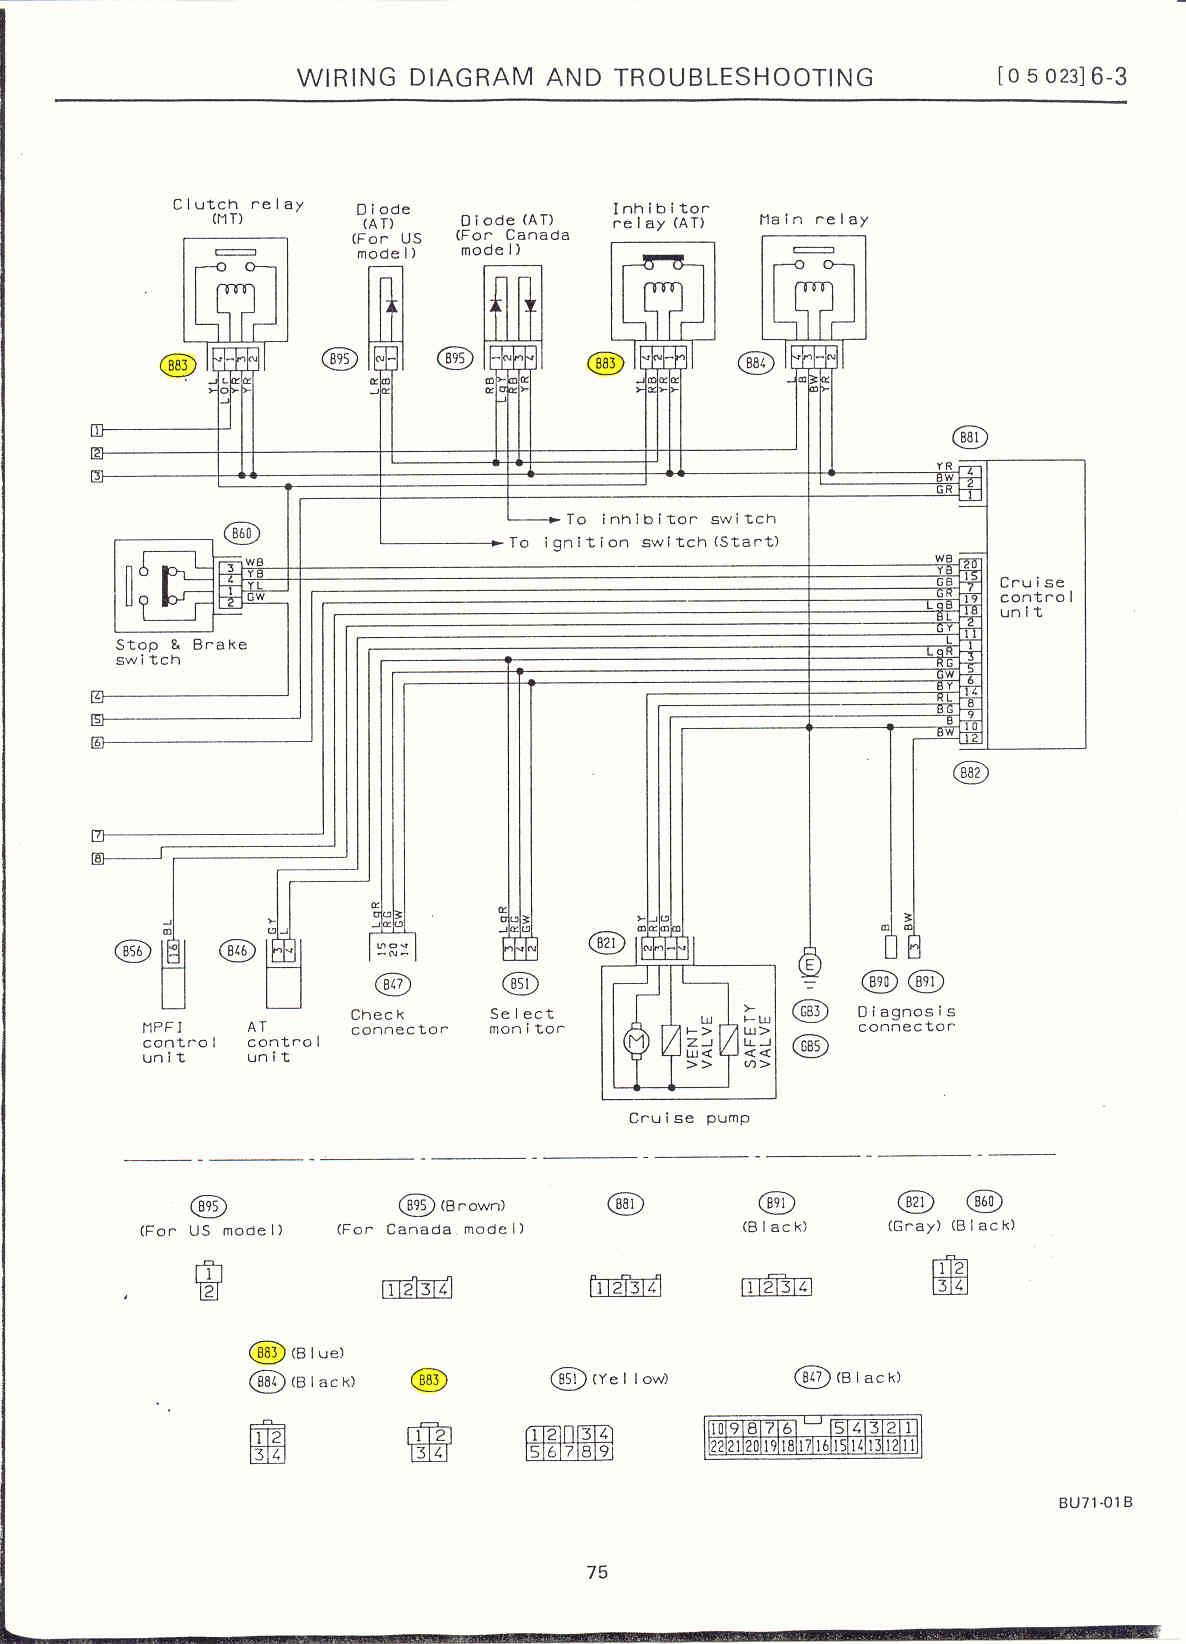 subaru legacy audio wiring diagram 2004 international 4300 radio 2001 outback